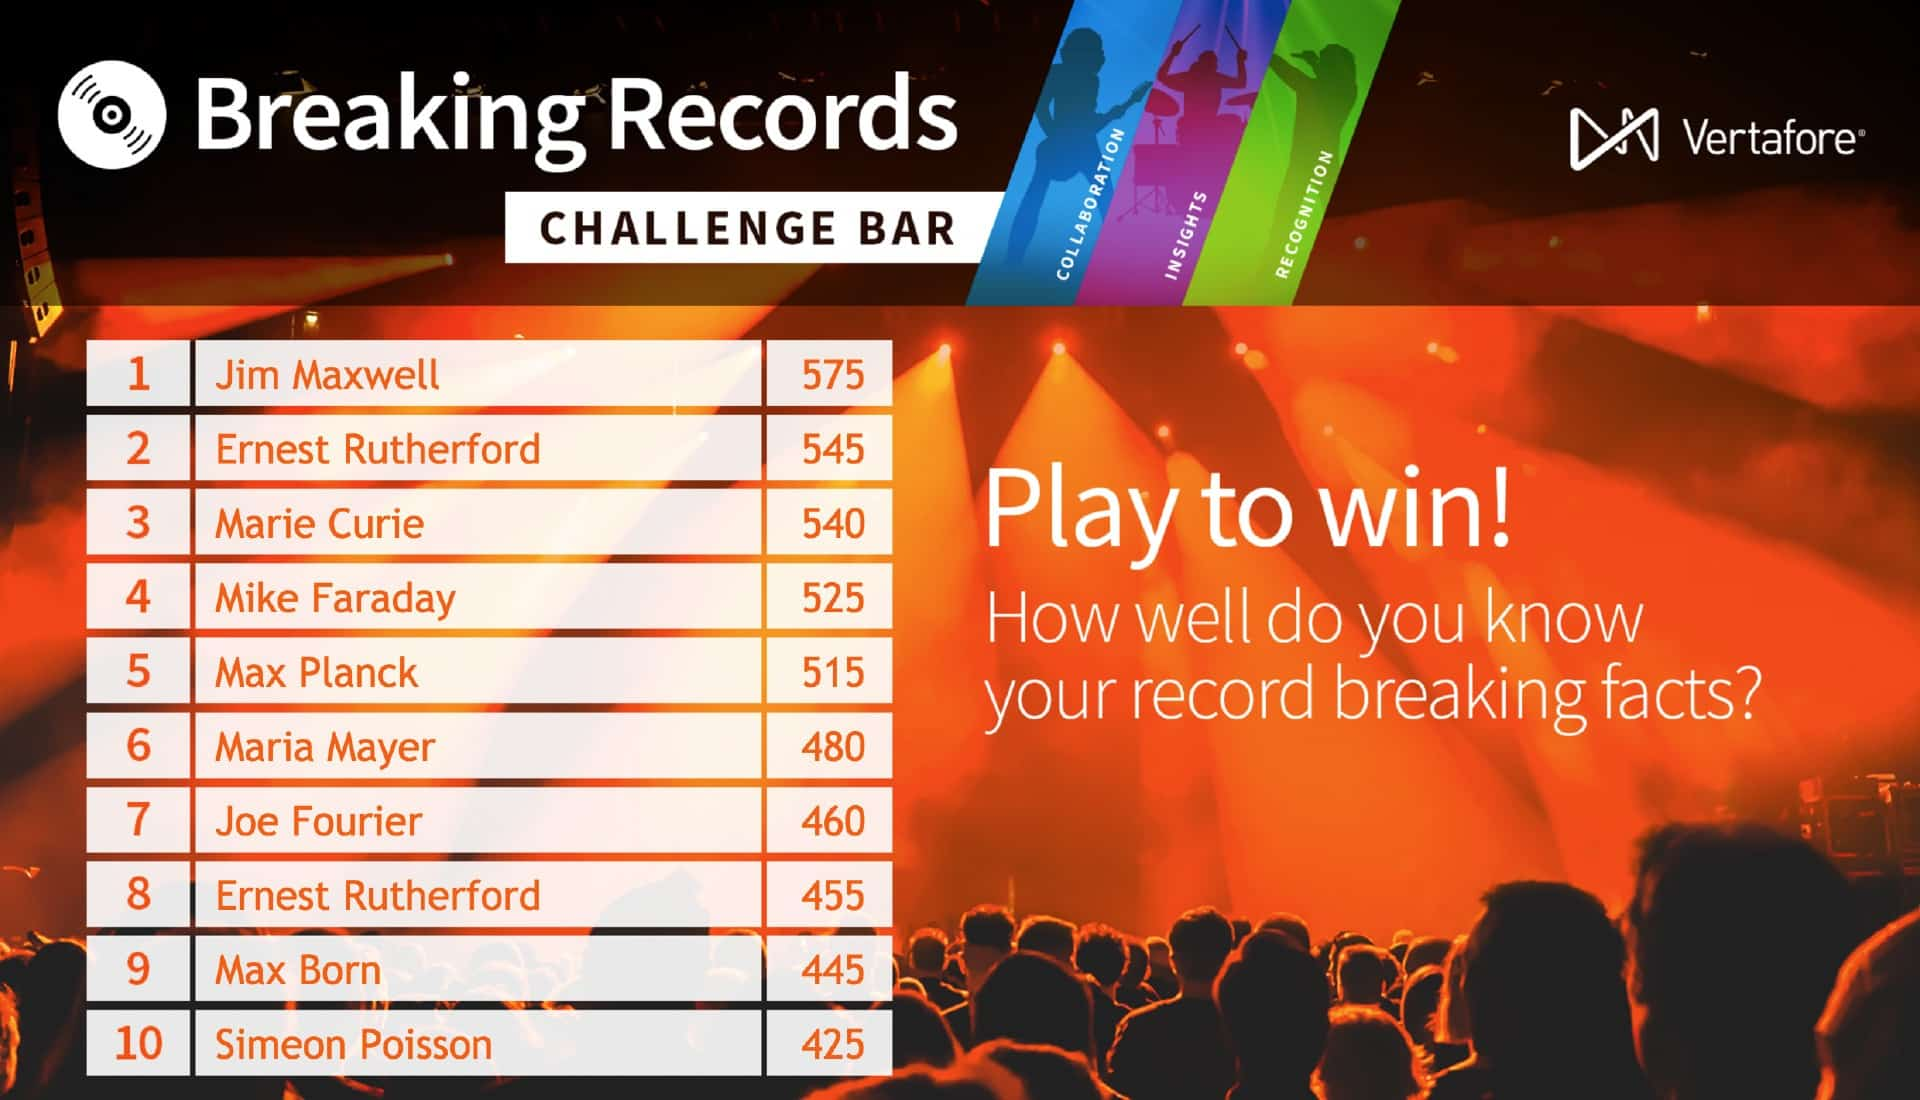 Checklist For Exhibition Booth : Challenge bar interactive trade show booth games